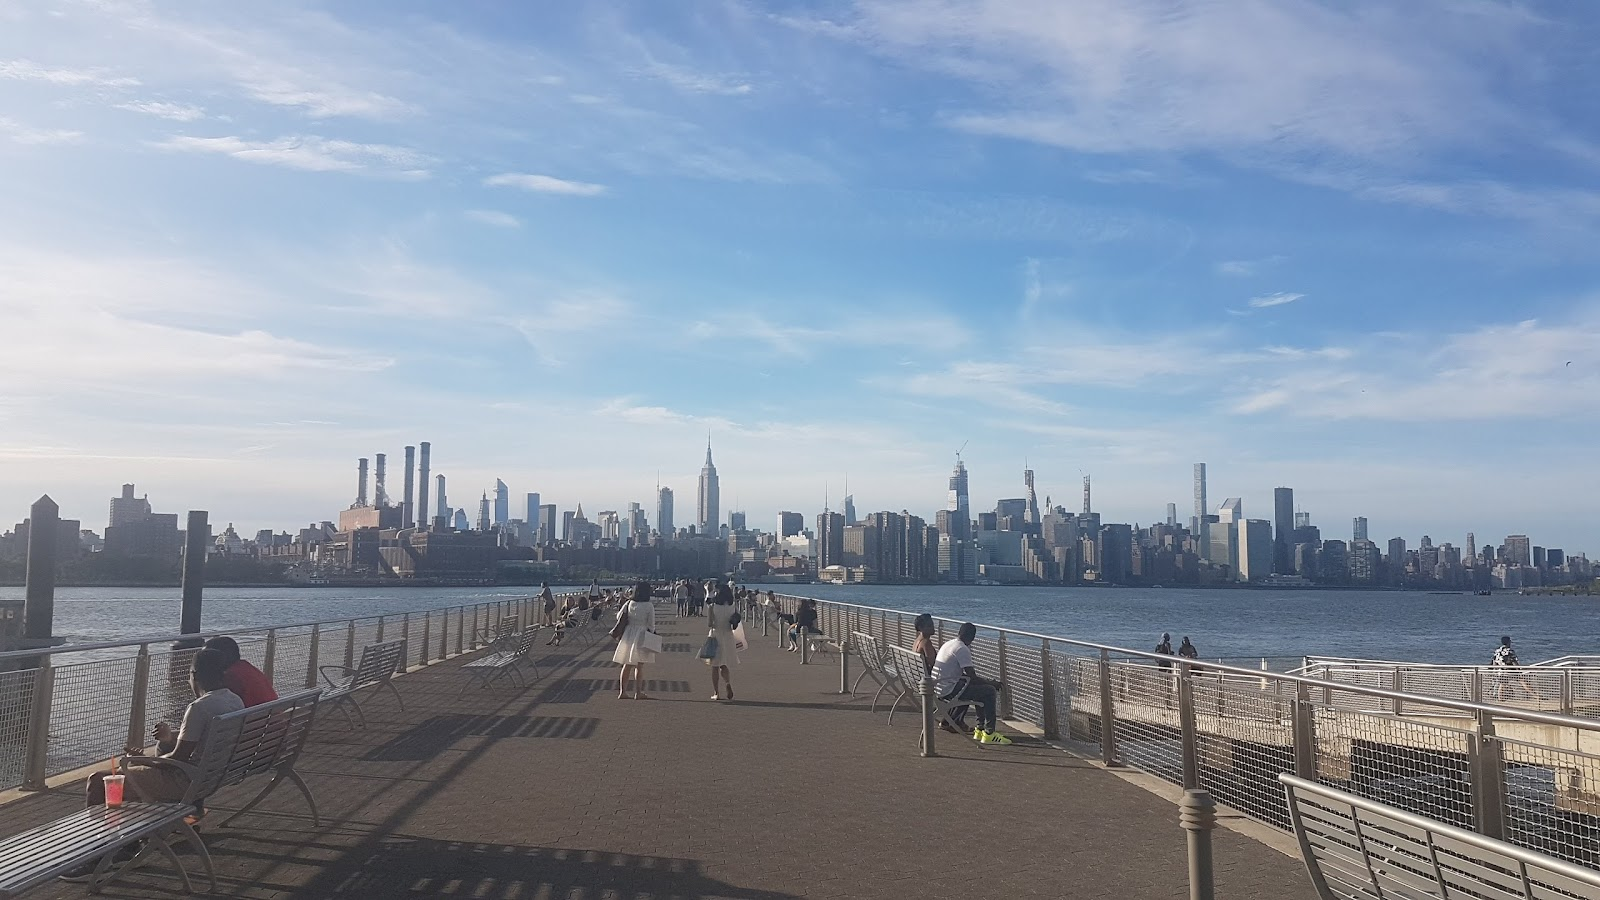 Picture of the Manhattan skyline.